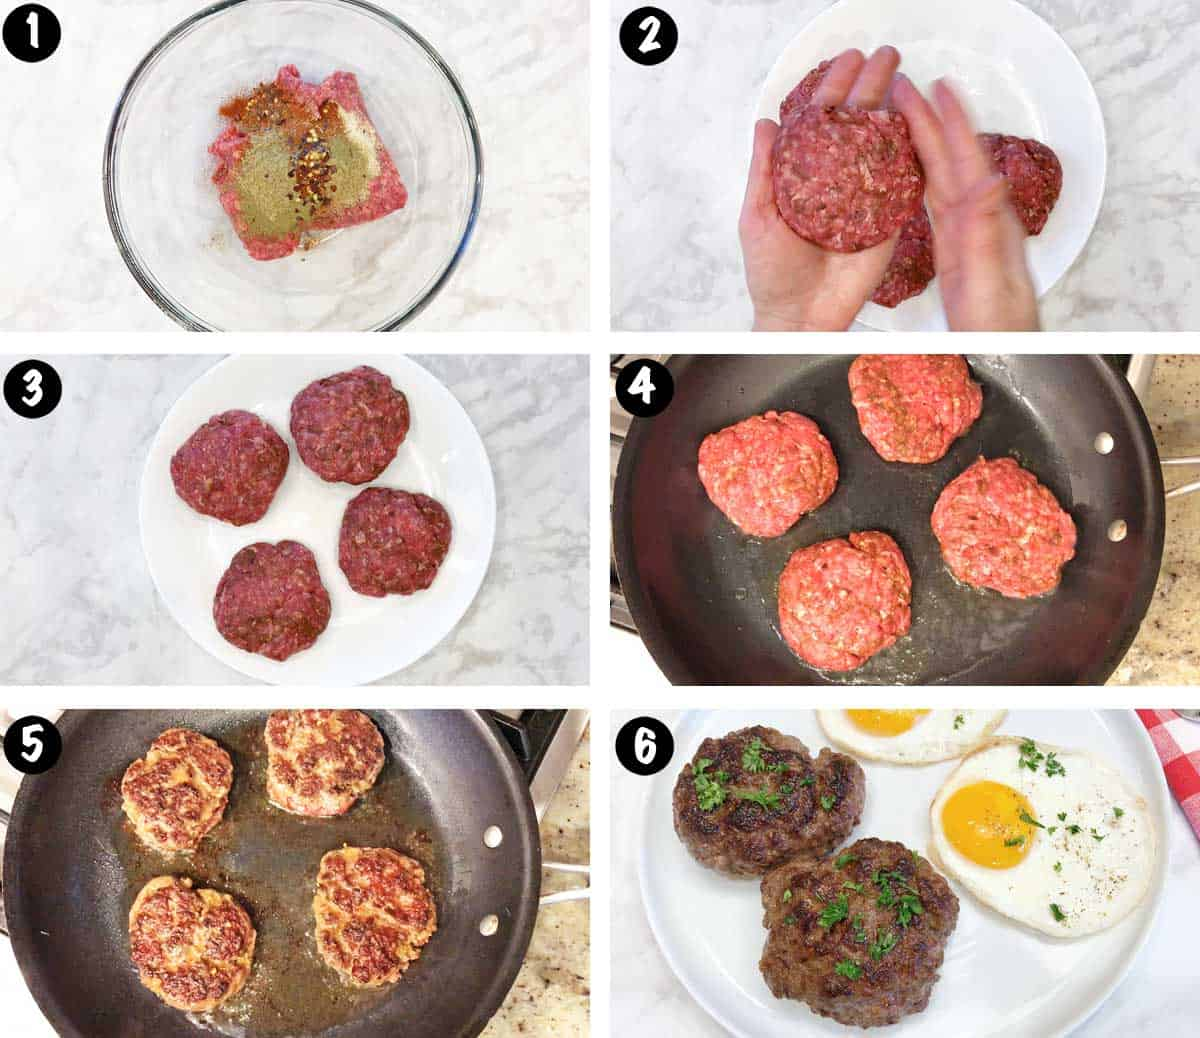 A photo collage showing the steps for making beef sausage.